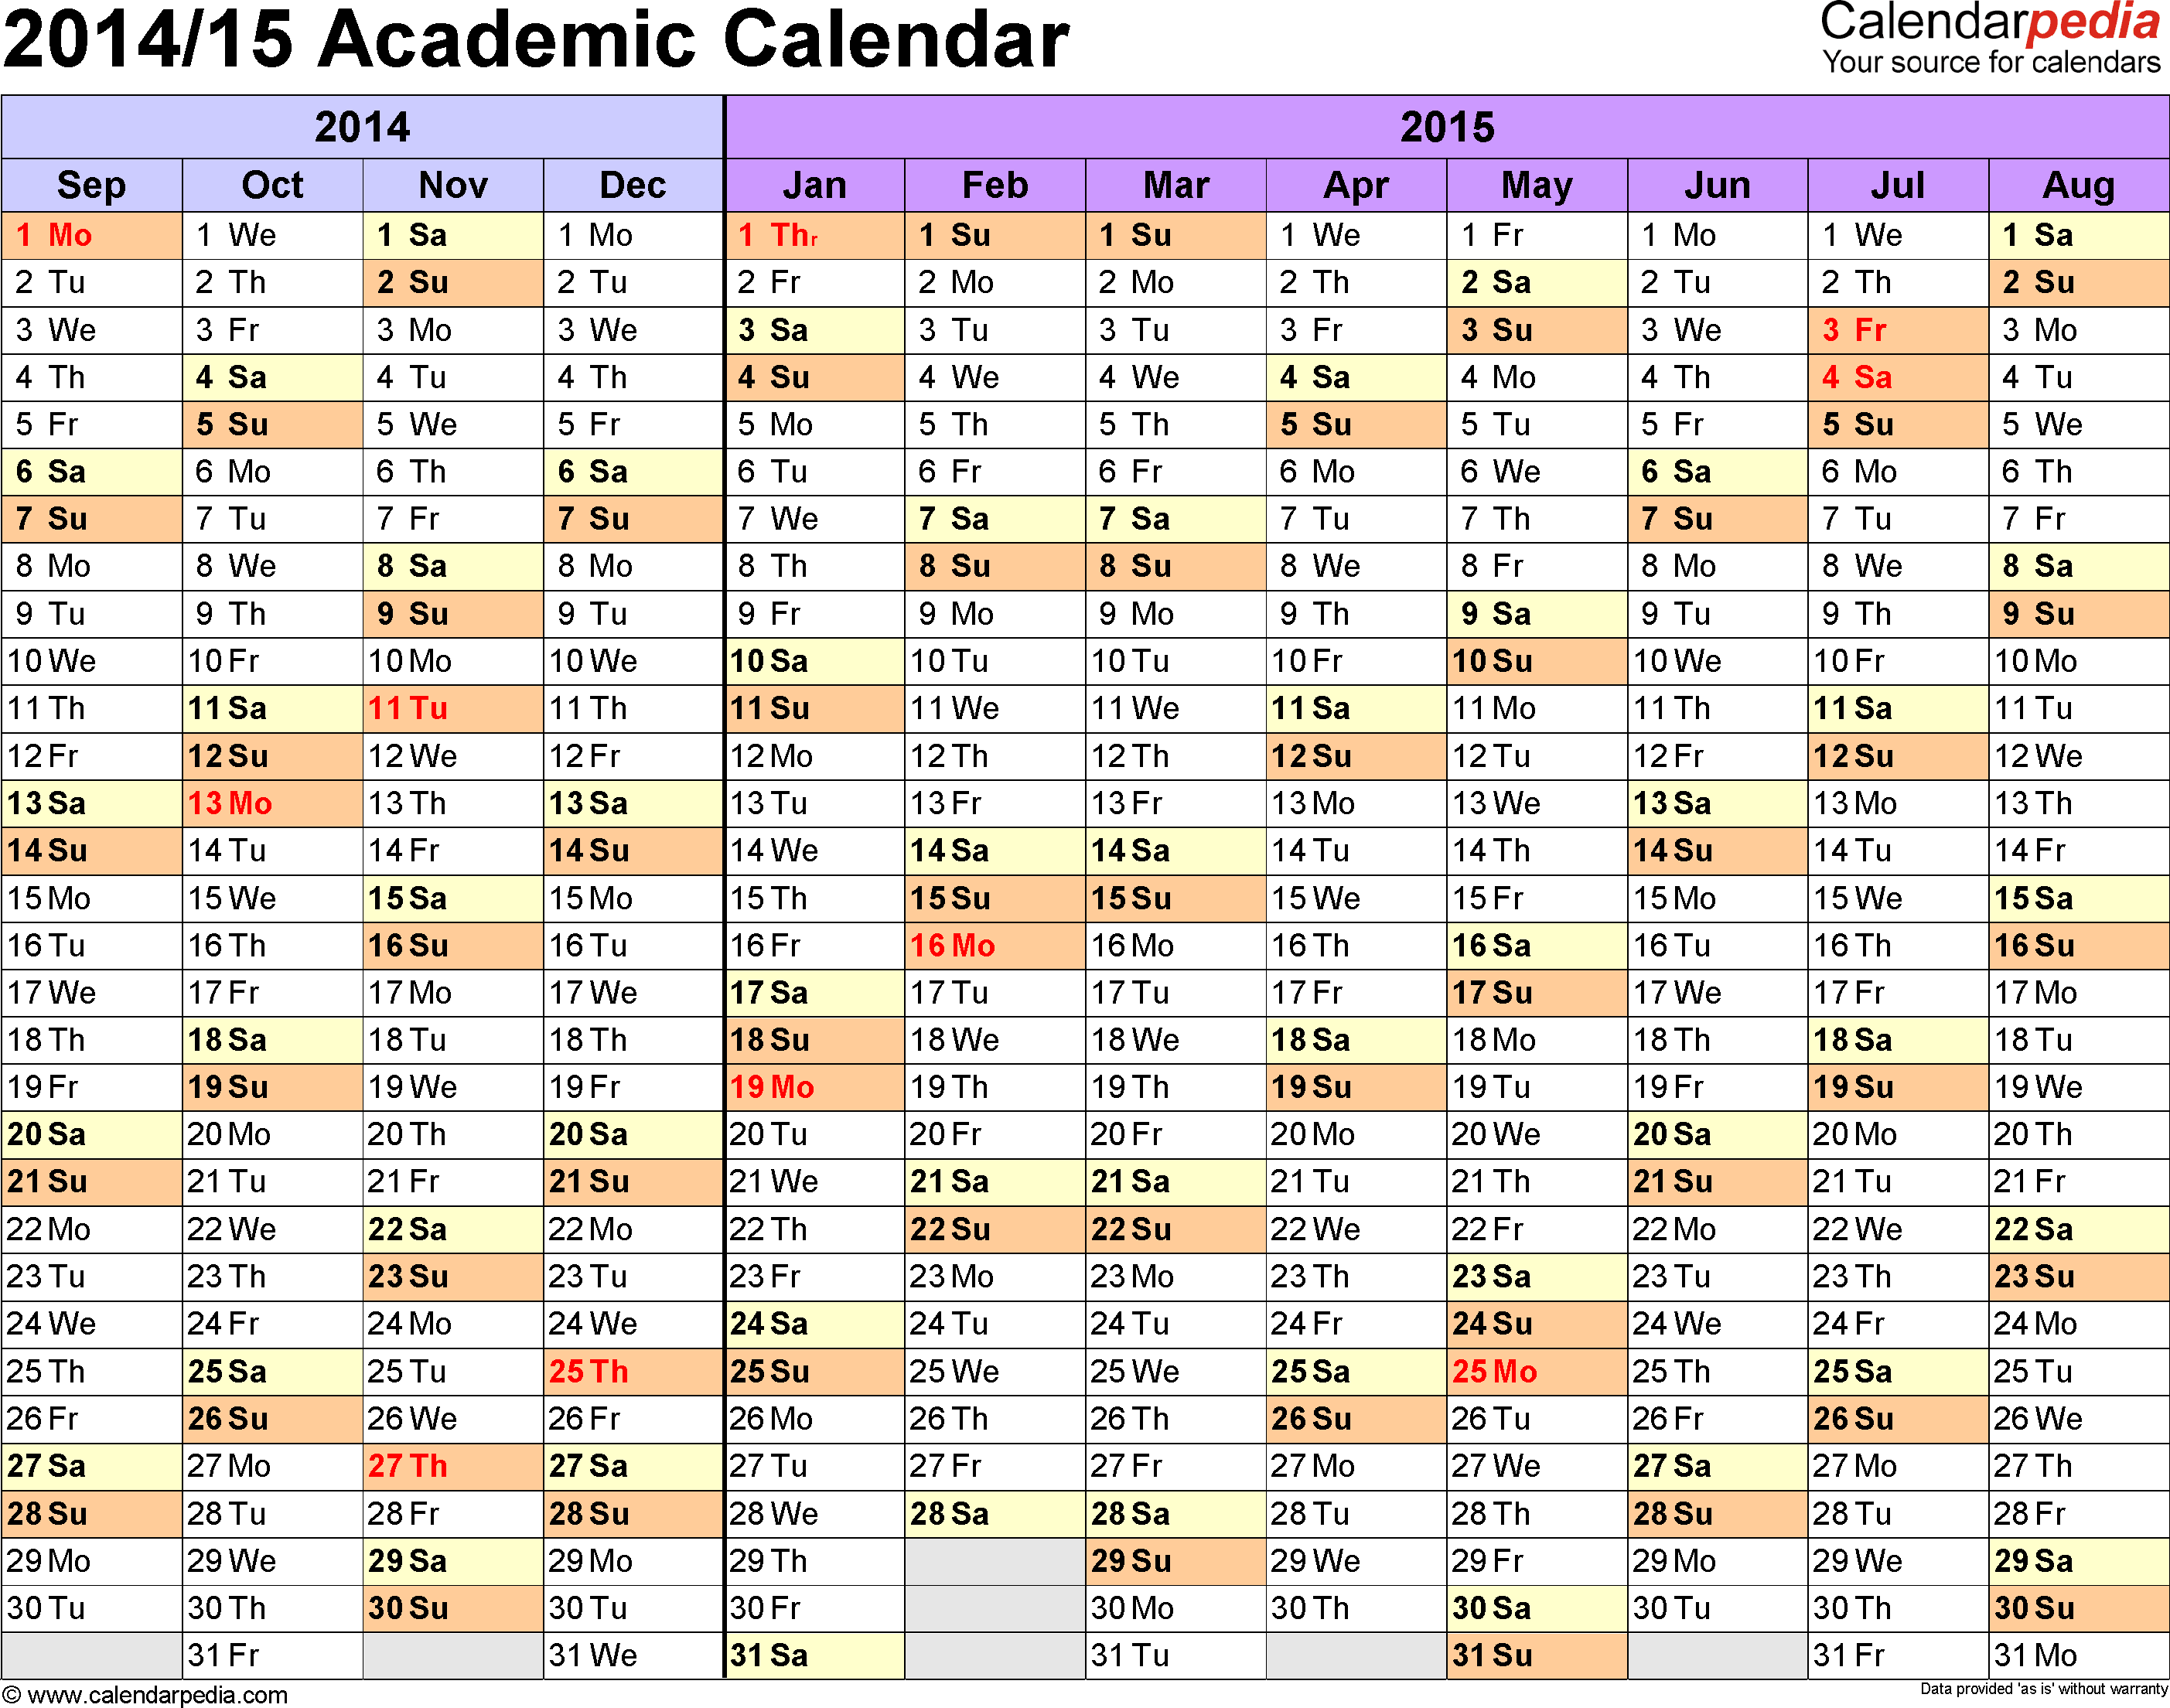 Template 1: Academic calendar 2014/15, for Microsoft Word (.docx file), landscape, 1 page